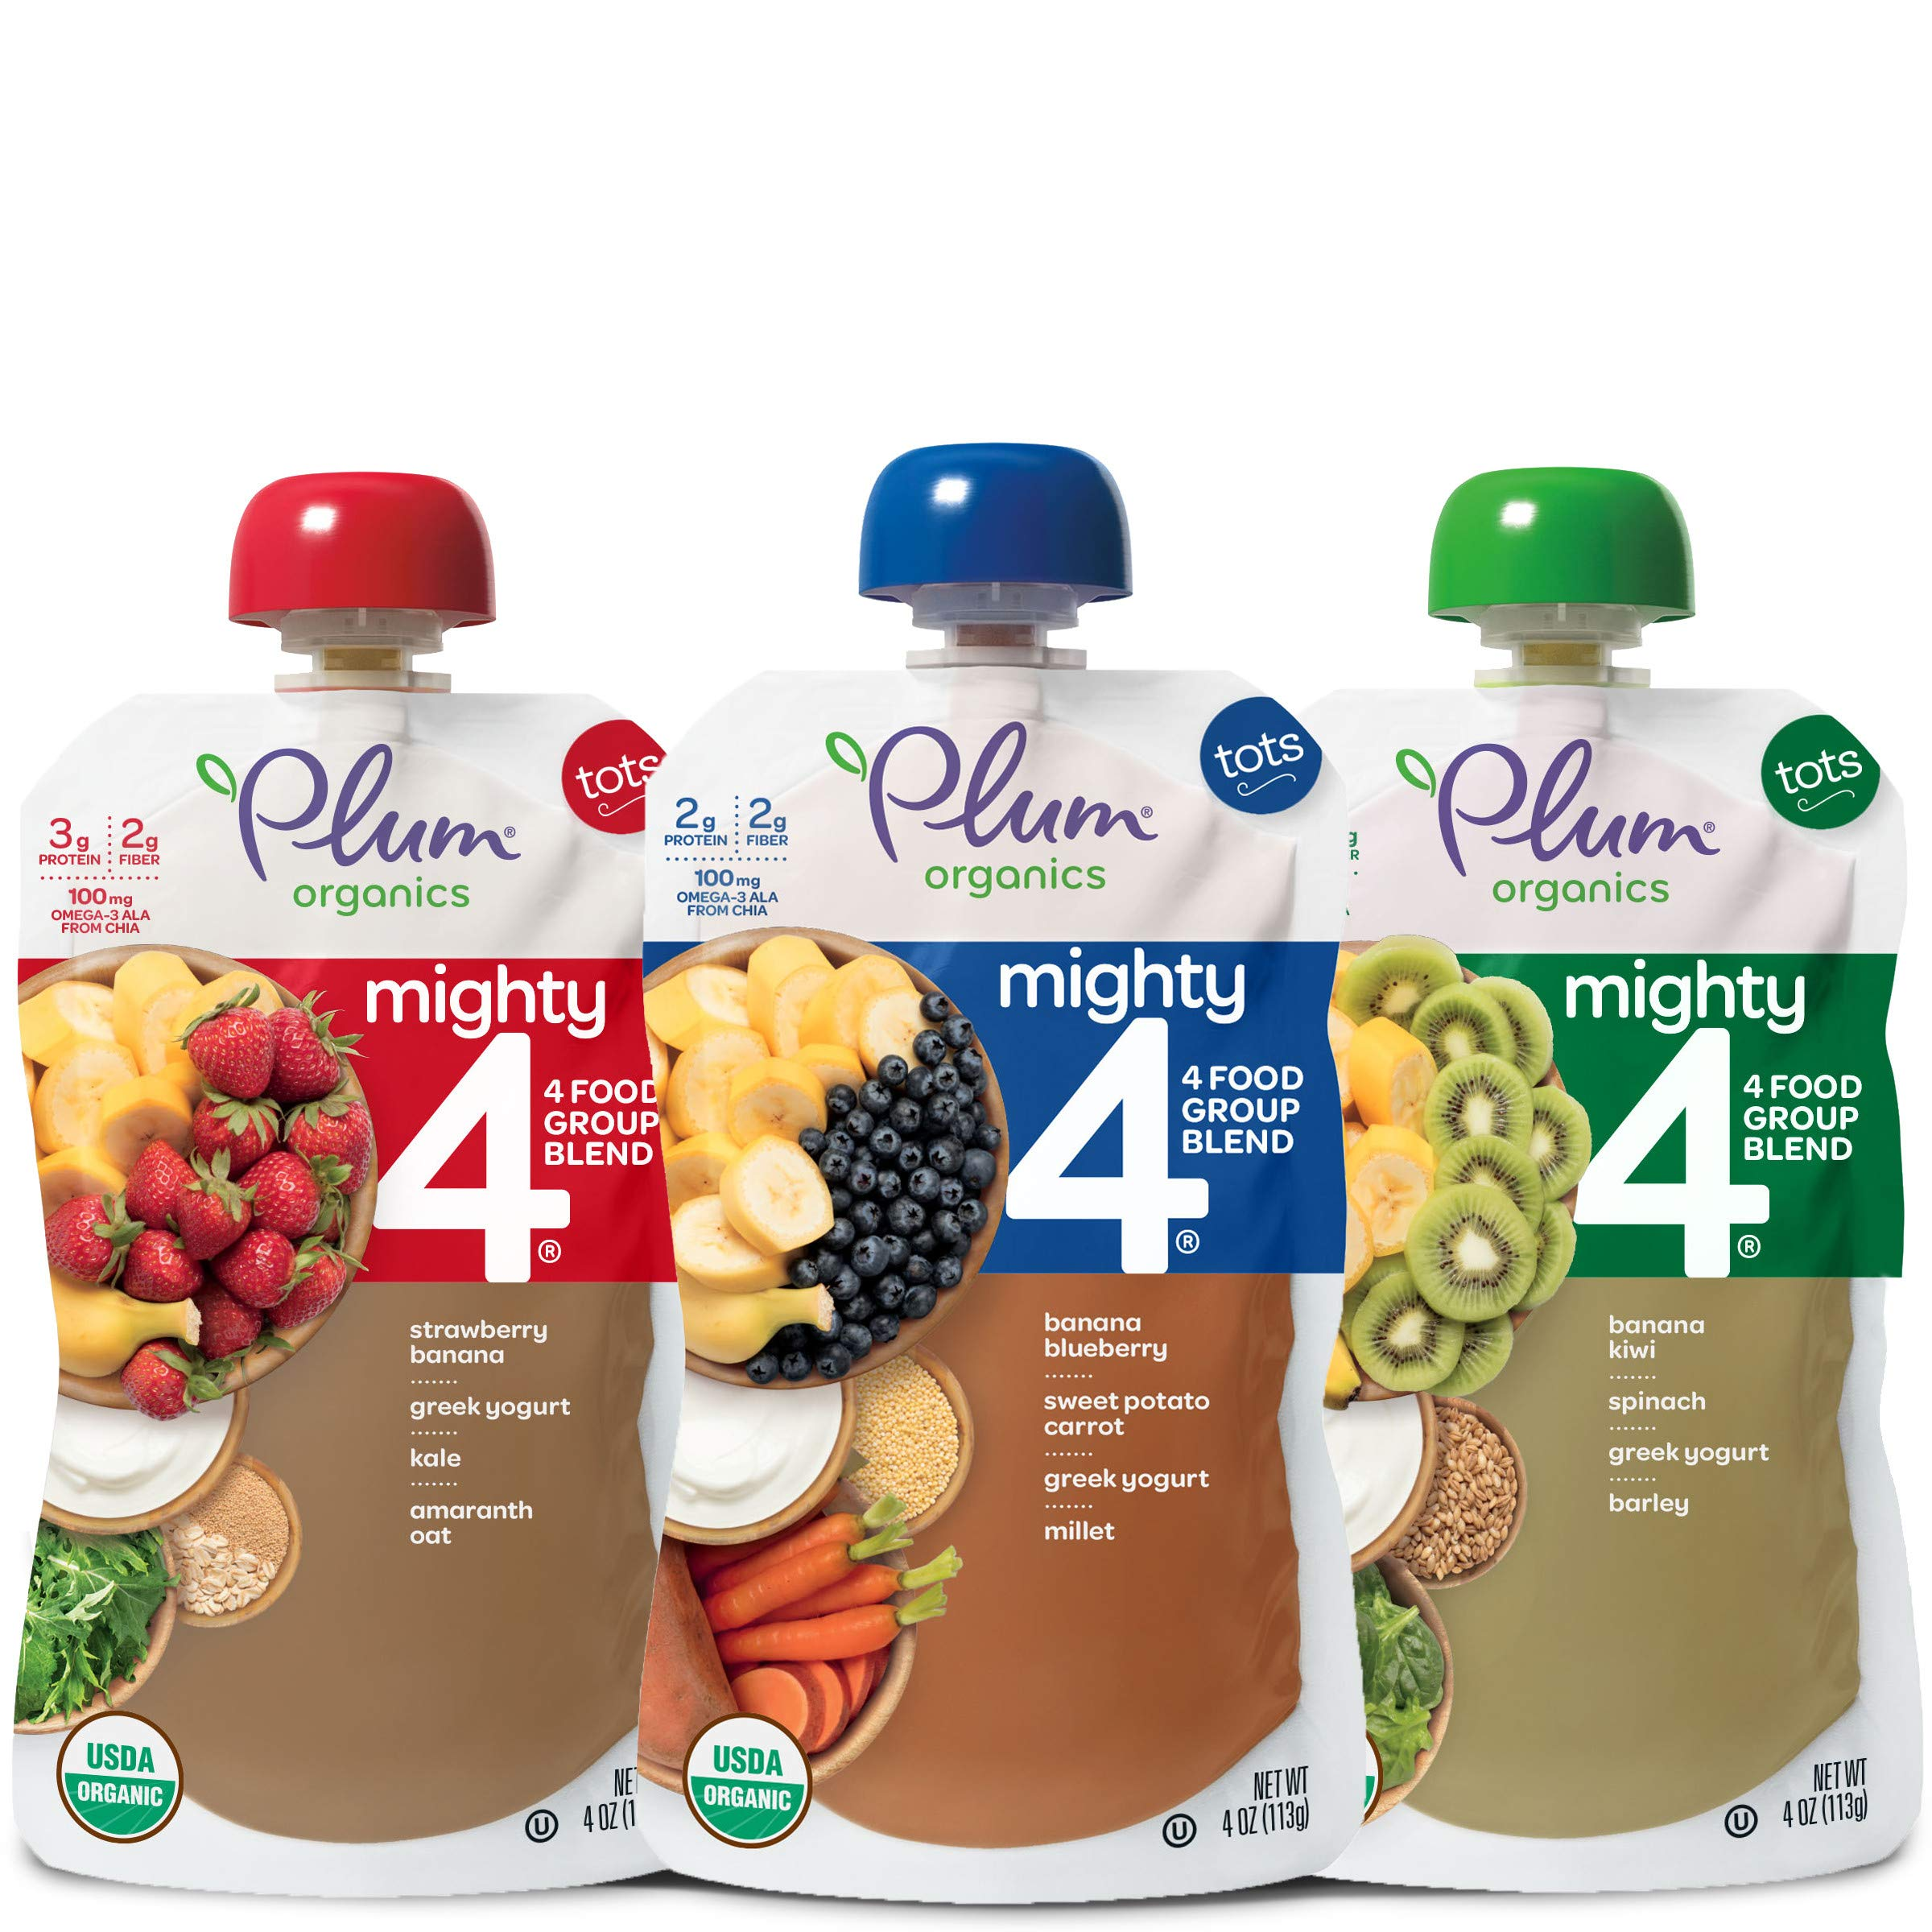 Plum Organics Mighty 4, Organic Toddler Food, Variety Pack, 4 ounce pouches (Pack of 18) (Packaging May Vary) by Plum Organics